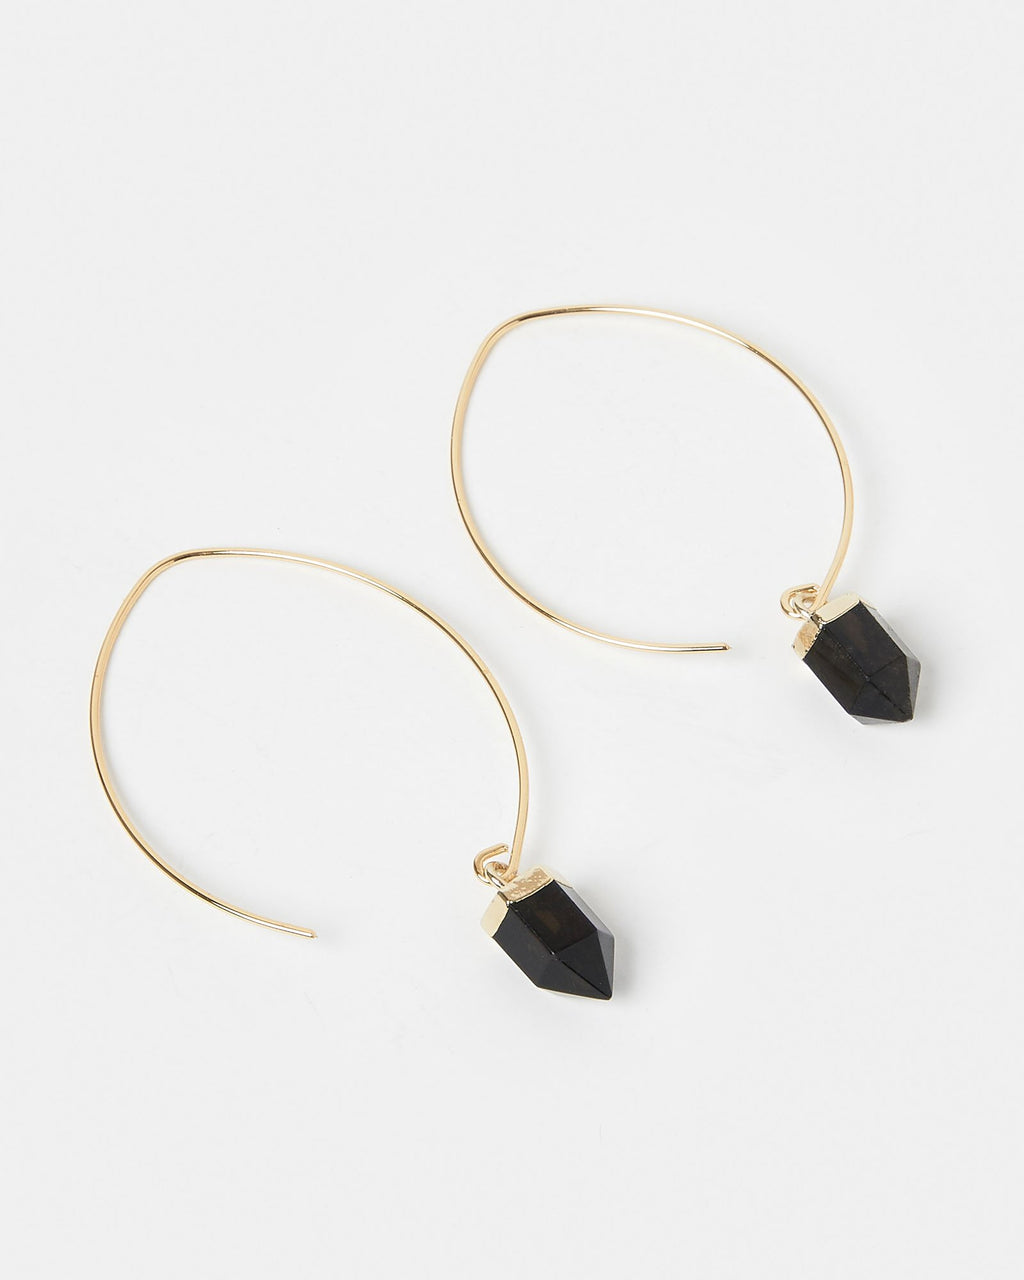 Miz Casa & Co Wanderer Earrings Gold Black